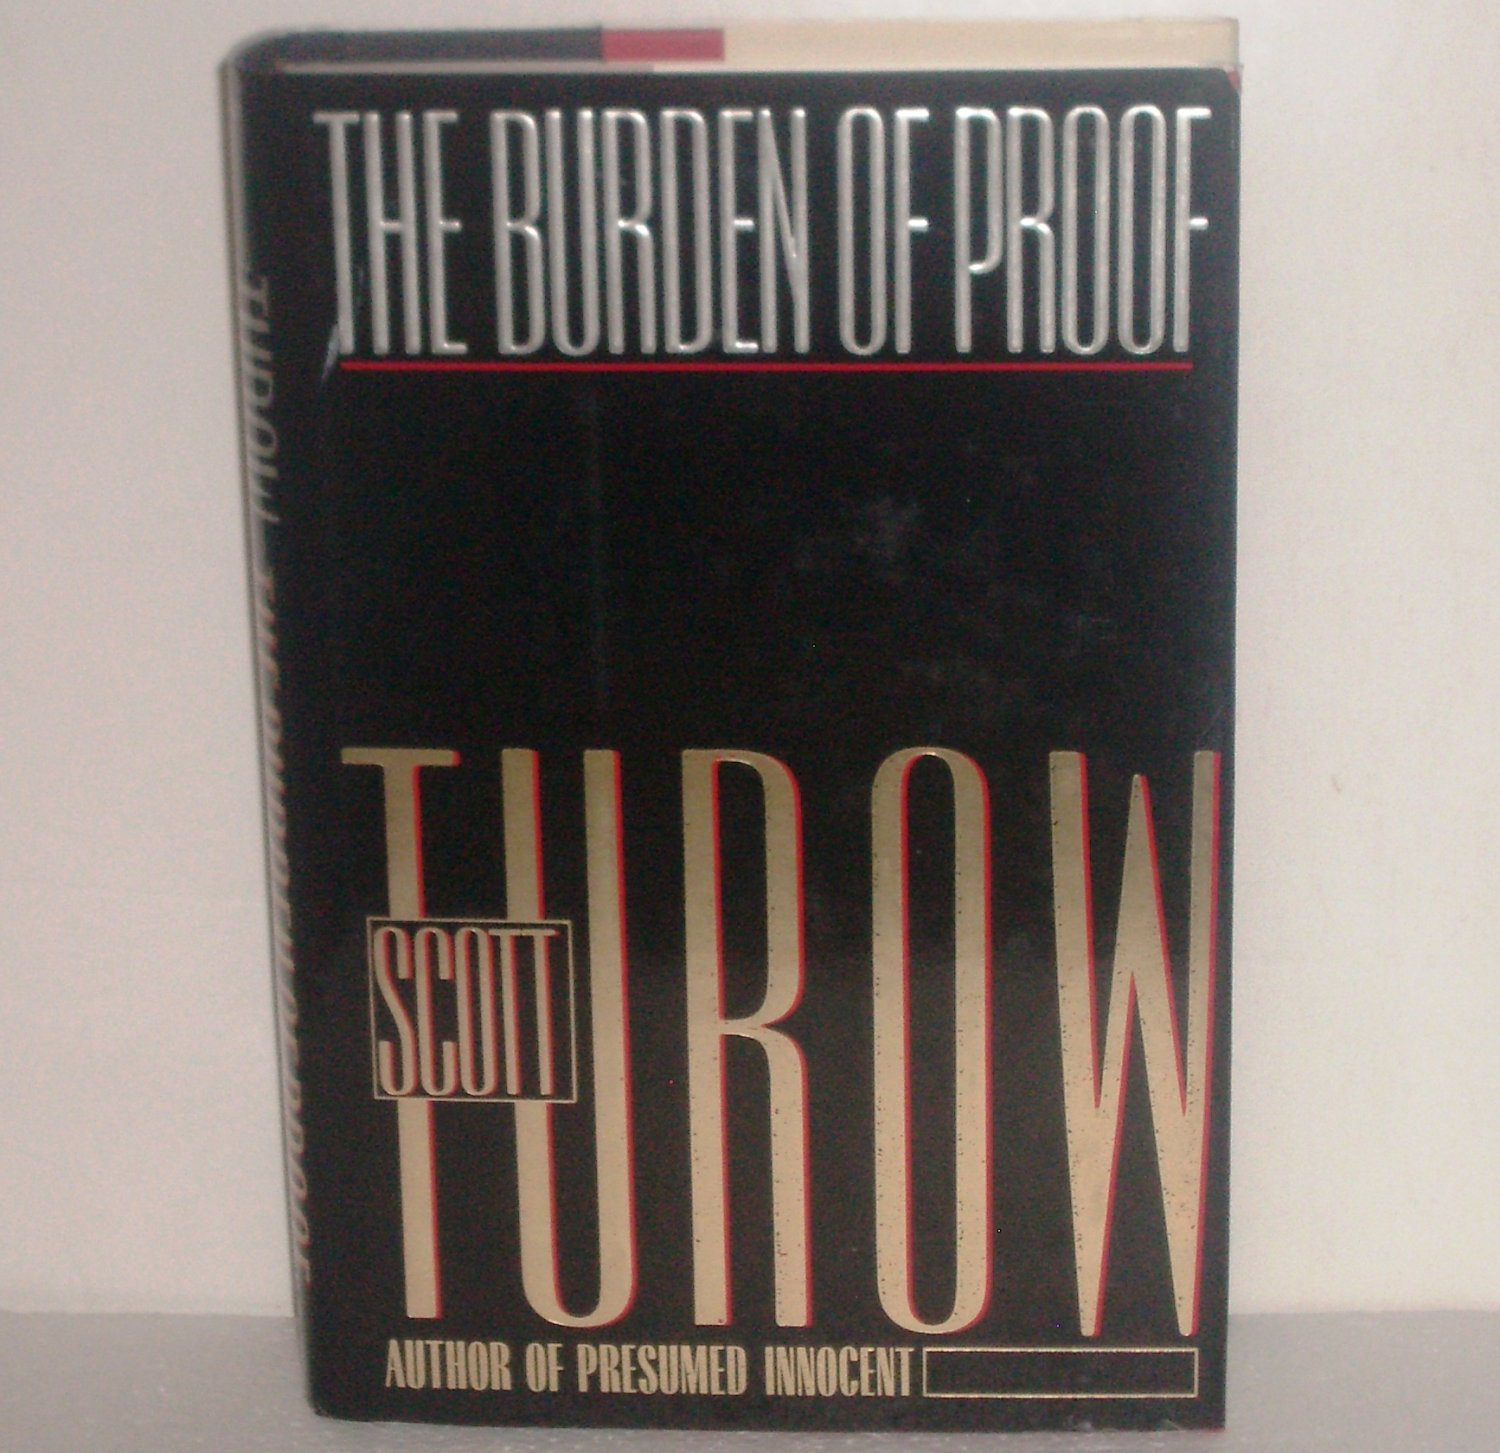 The Burden of Proof by Scott Turow Hardcover with Dust Jacket Legal Thriller 1990